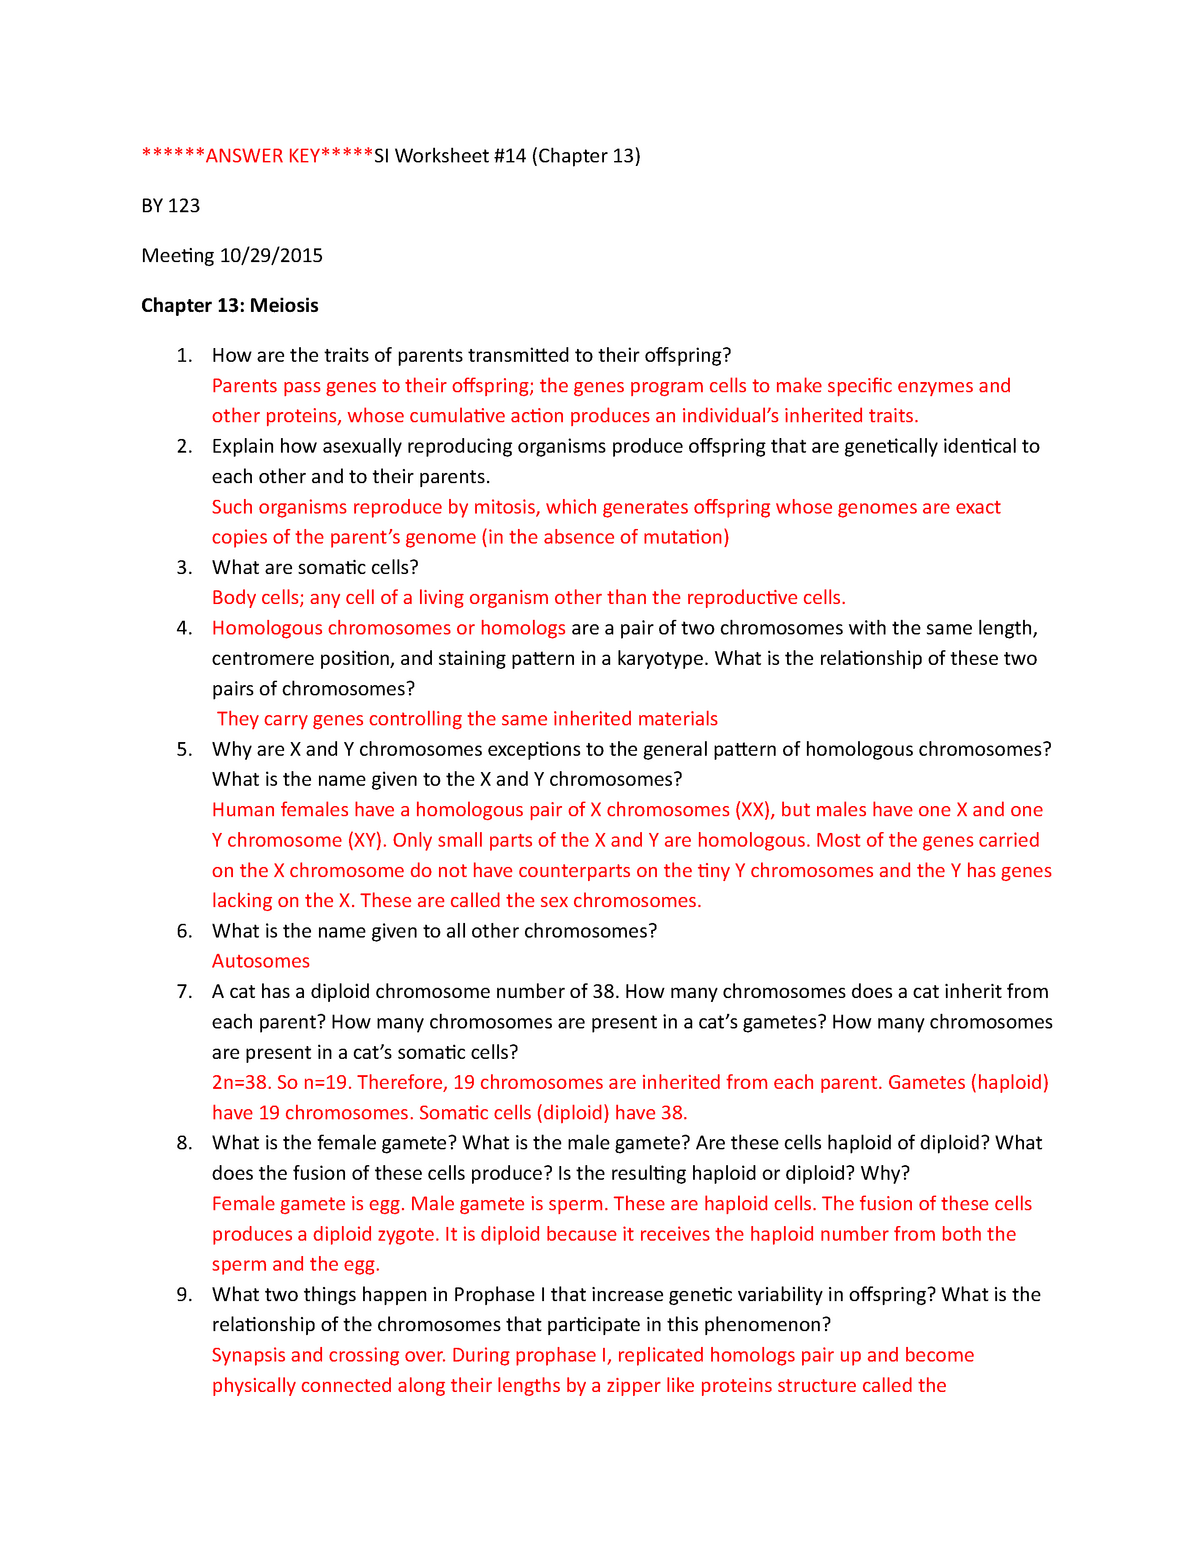 Answer Key Si Worksheet 14 Answer Key Si Worksheet 14 Chapter 13 By 123 Meeing 10 29 Chapter 13 Meiosis How Are The Traits Of Parents Transmited To Their Studocu [ 1553 x 1200 Pixel ]